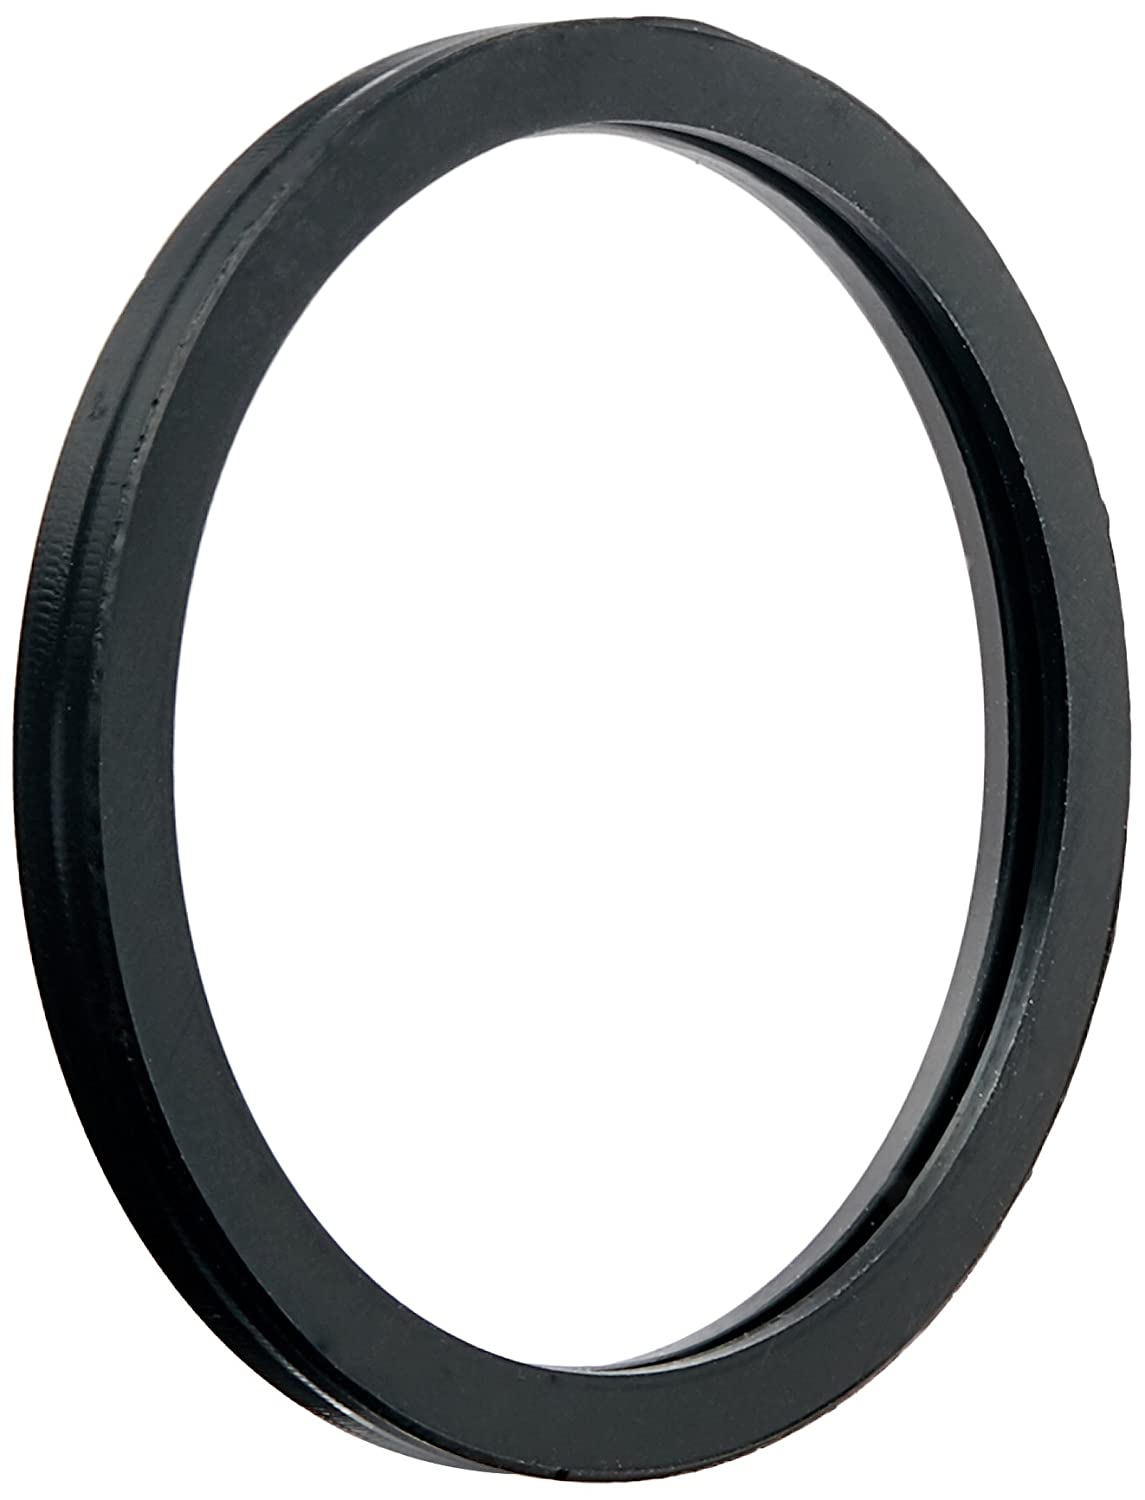 Nightstick Replacement Lens and Gasket for XPP-5420/5422